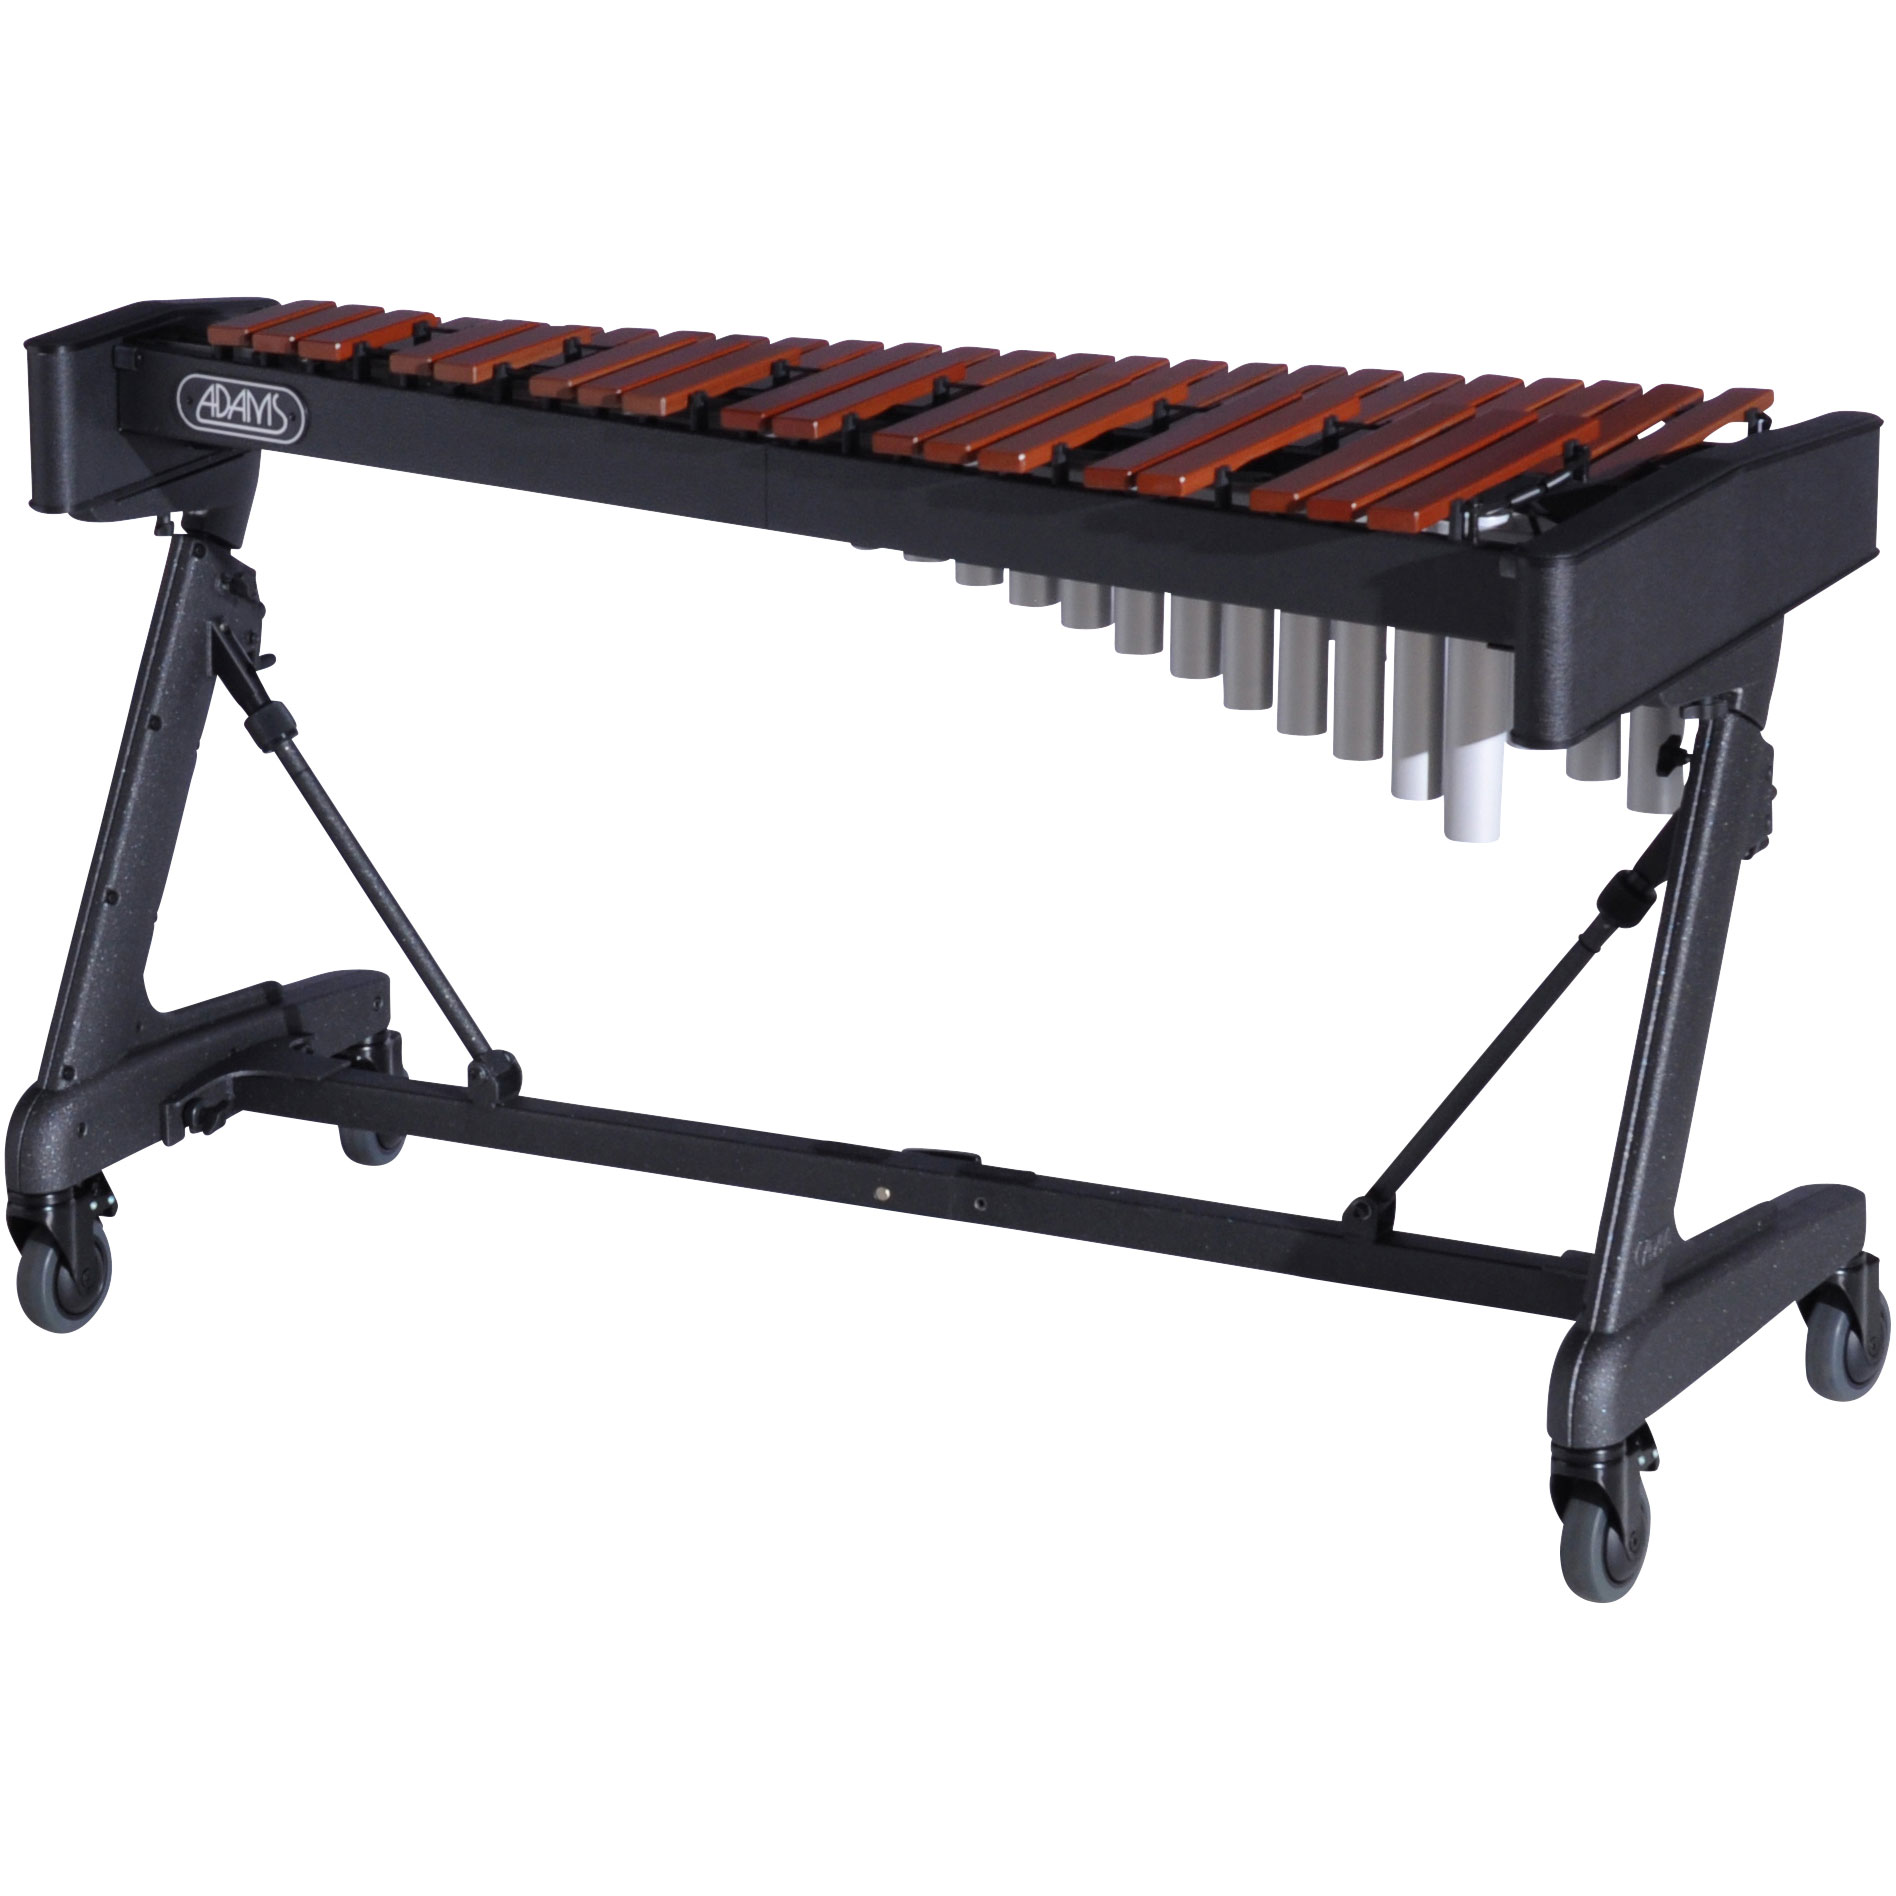 Adams 3.5 Octave Soloist Series Synthetic Xylophone with Apex Frame